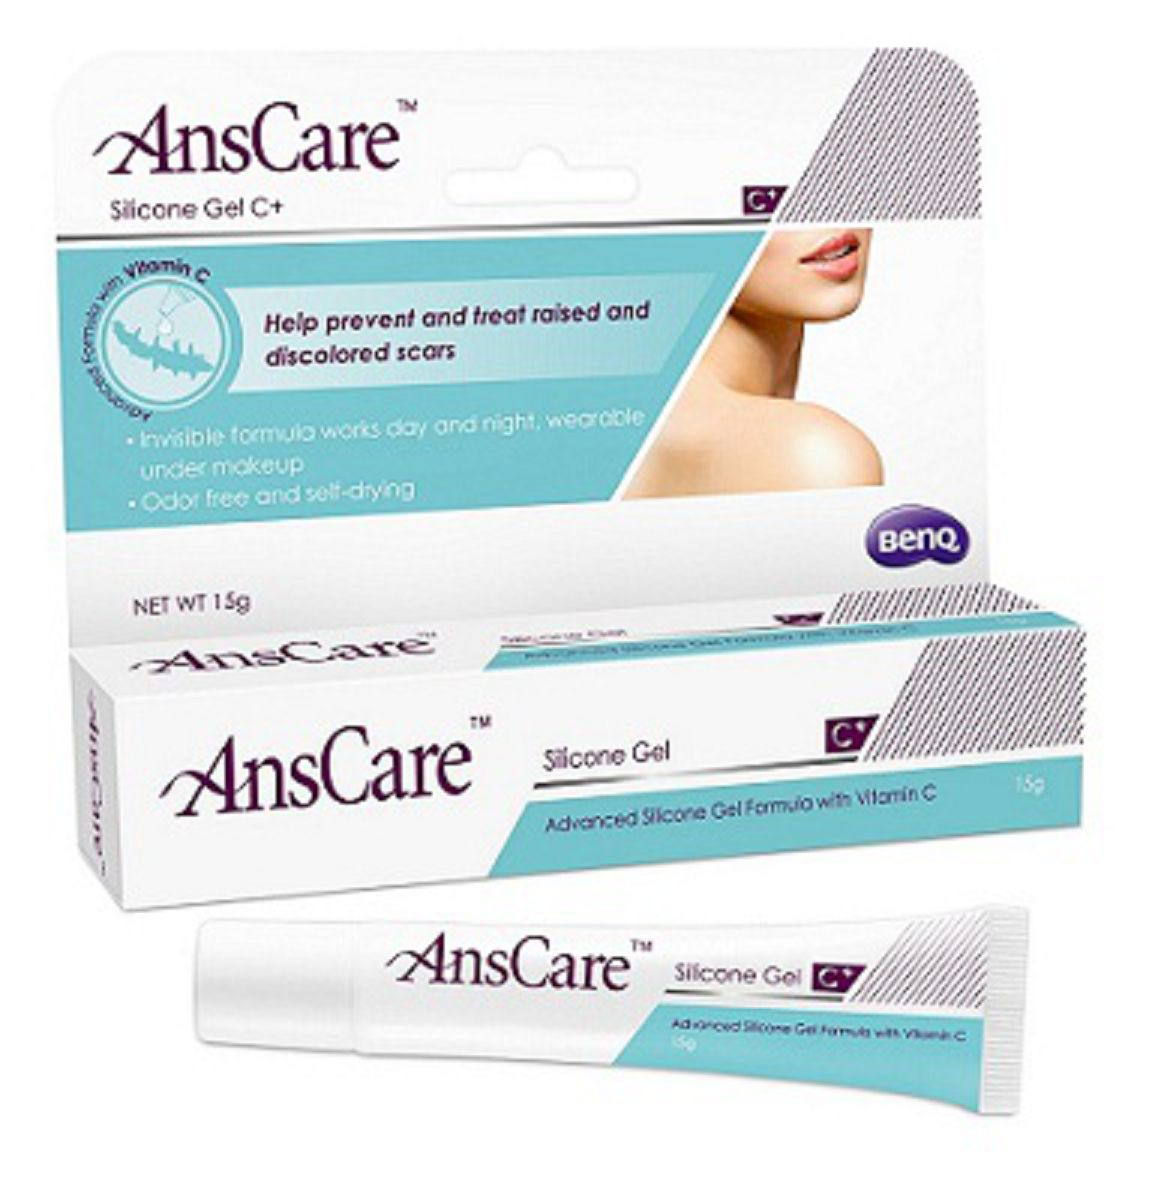 AnsCare Scar Reduction Silicone Gel C+ / BenQ Materials Corp.